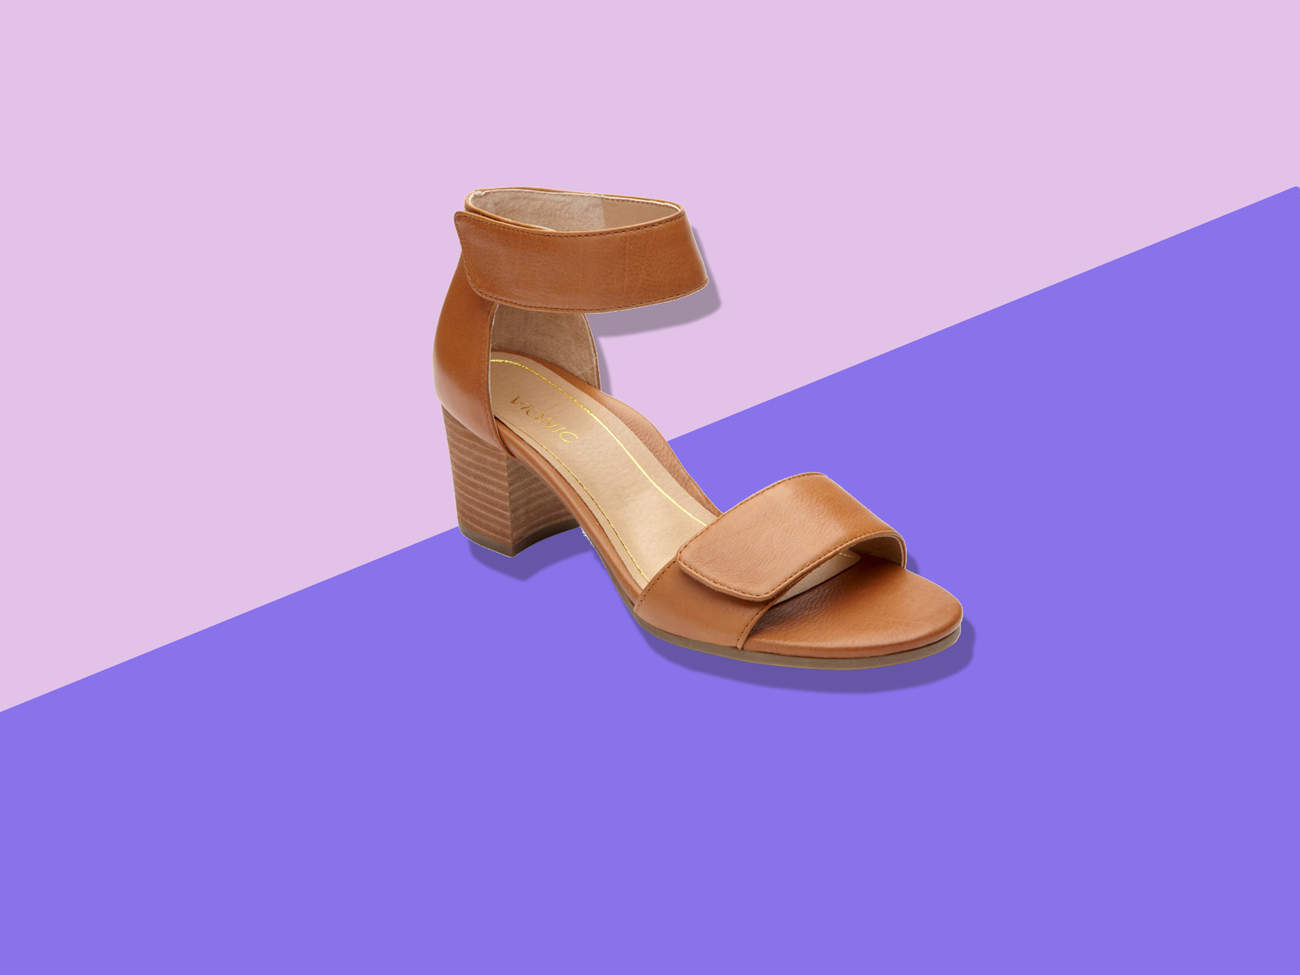 solana-saddle-sandal